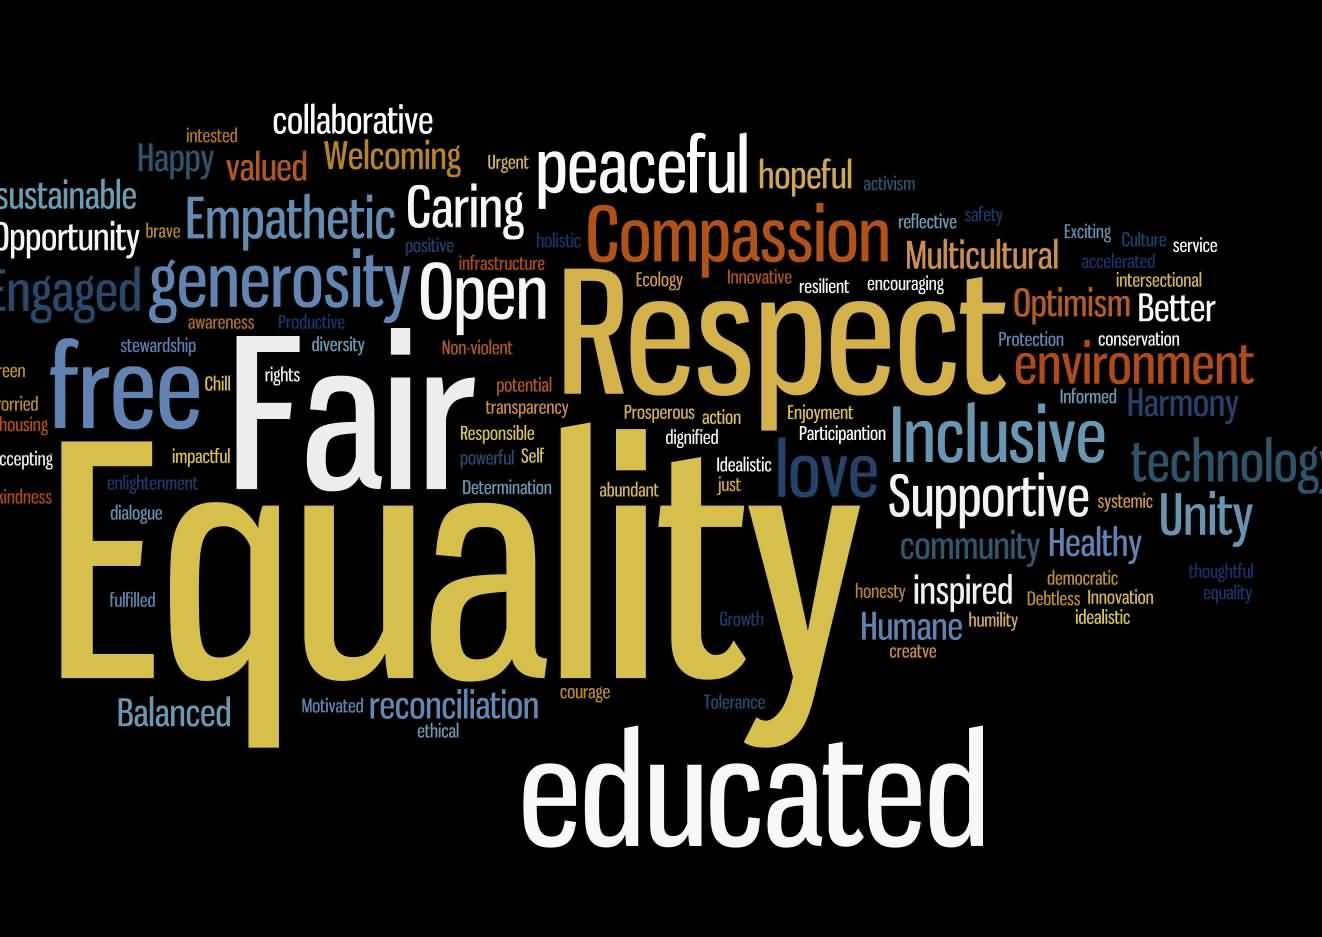 equality-quotes-respect-equally-educated-free-inclusive-inspired-humane